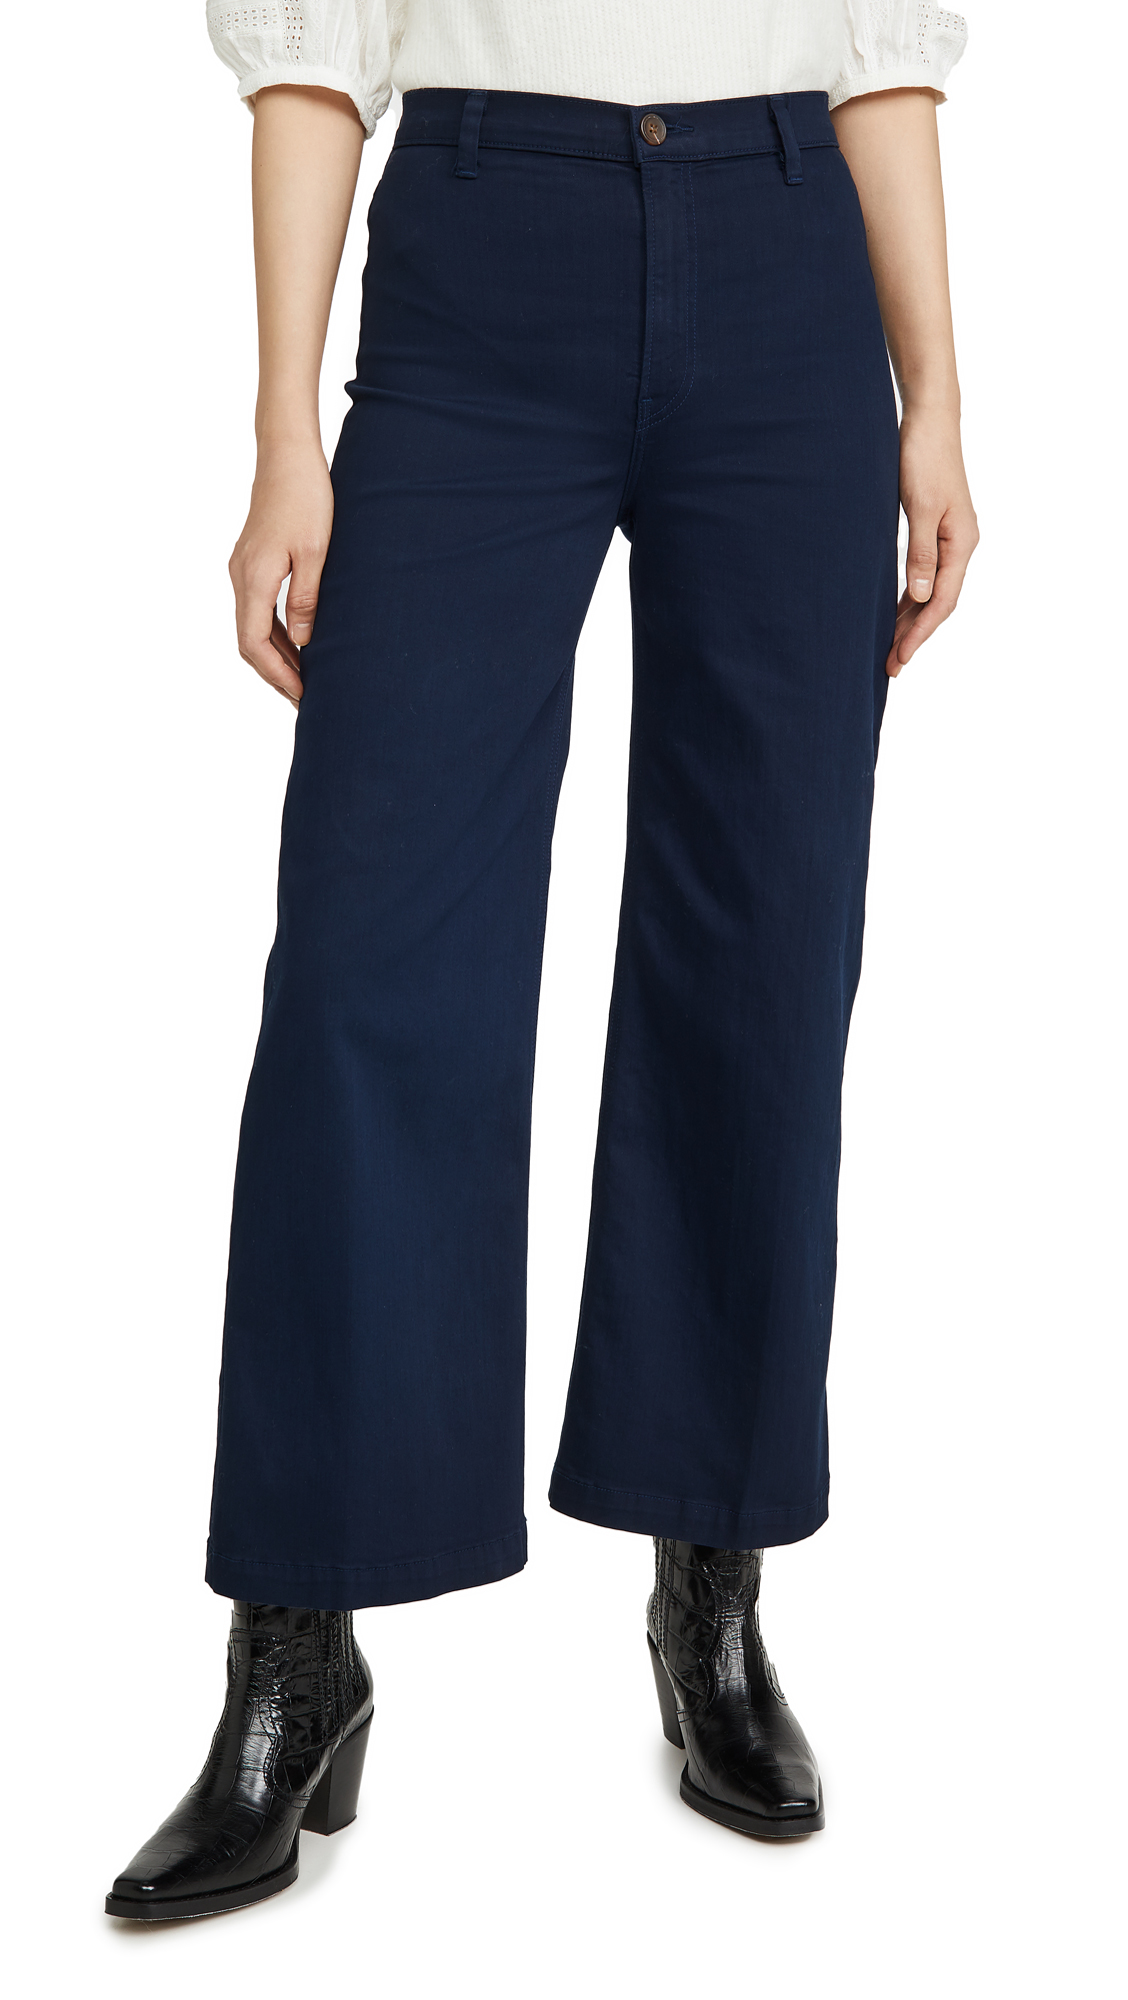 Reformation Jane Wide Leg Jeans